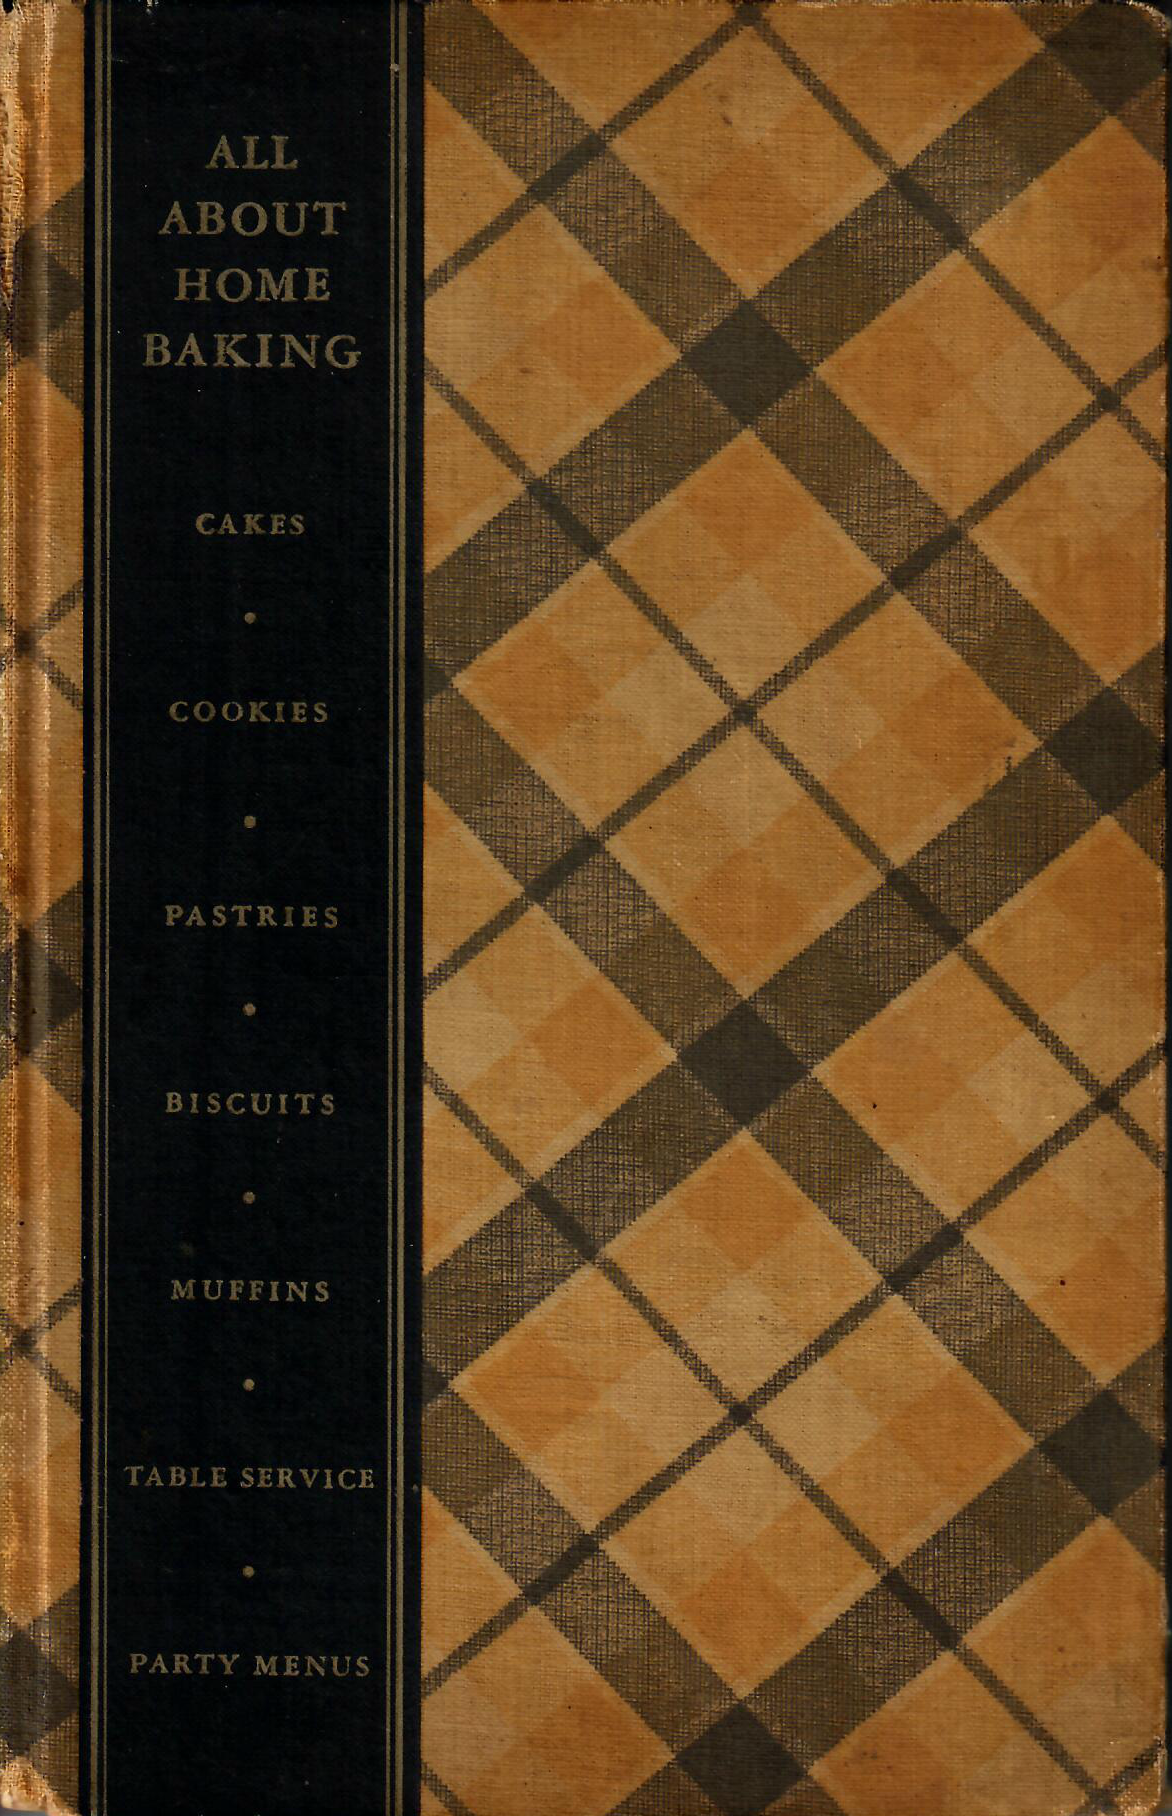 all about home baking published by the general foods corporation